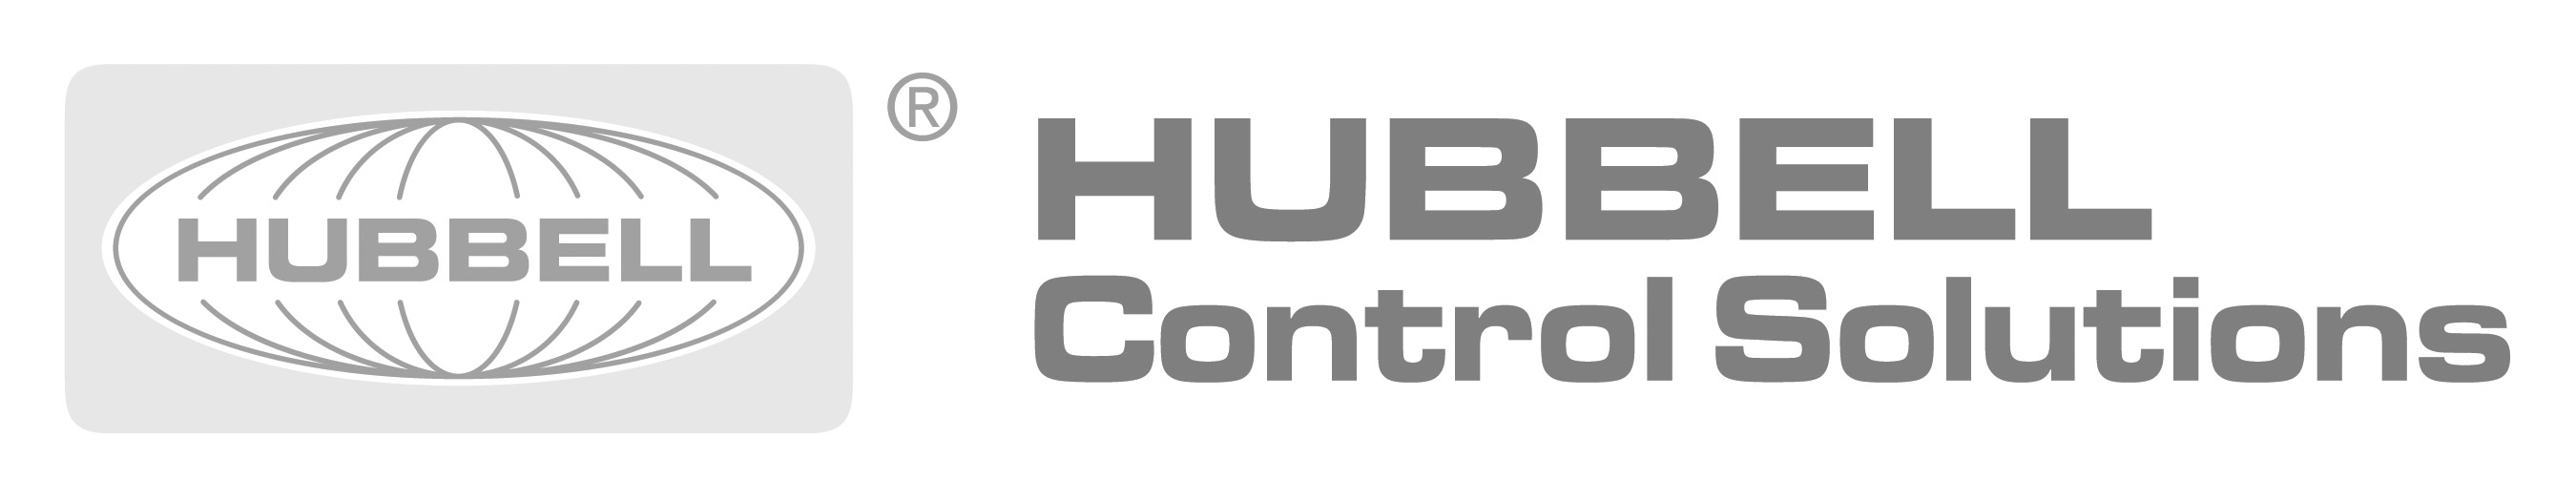 hubbell control solutions